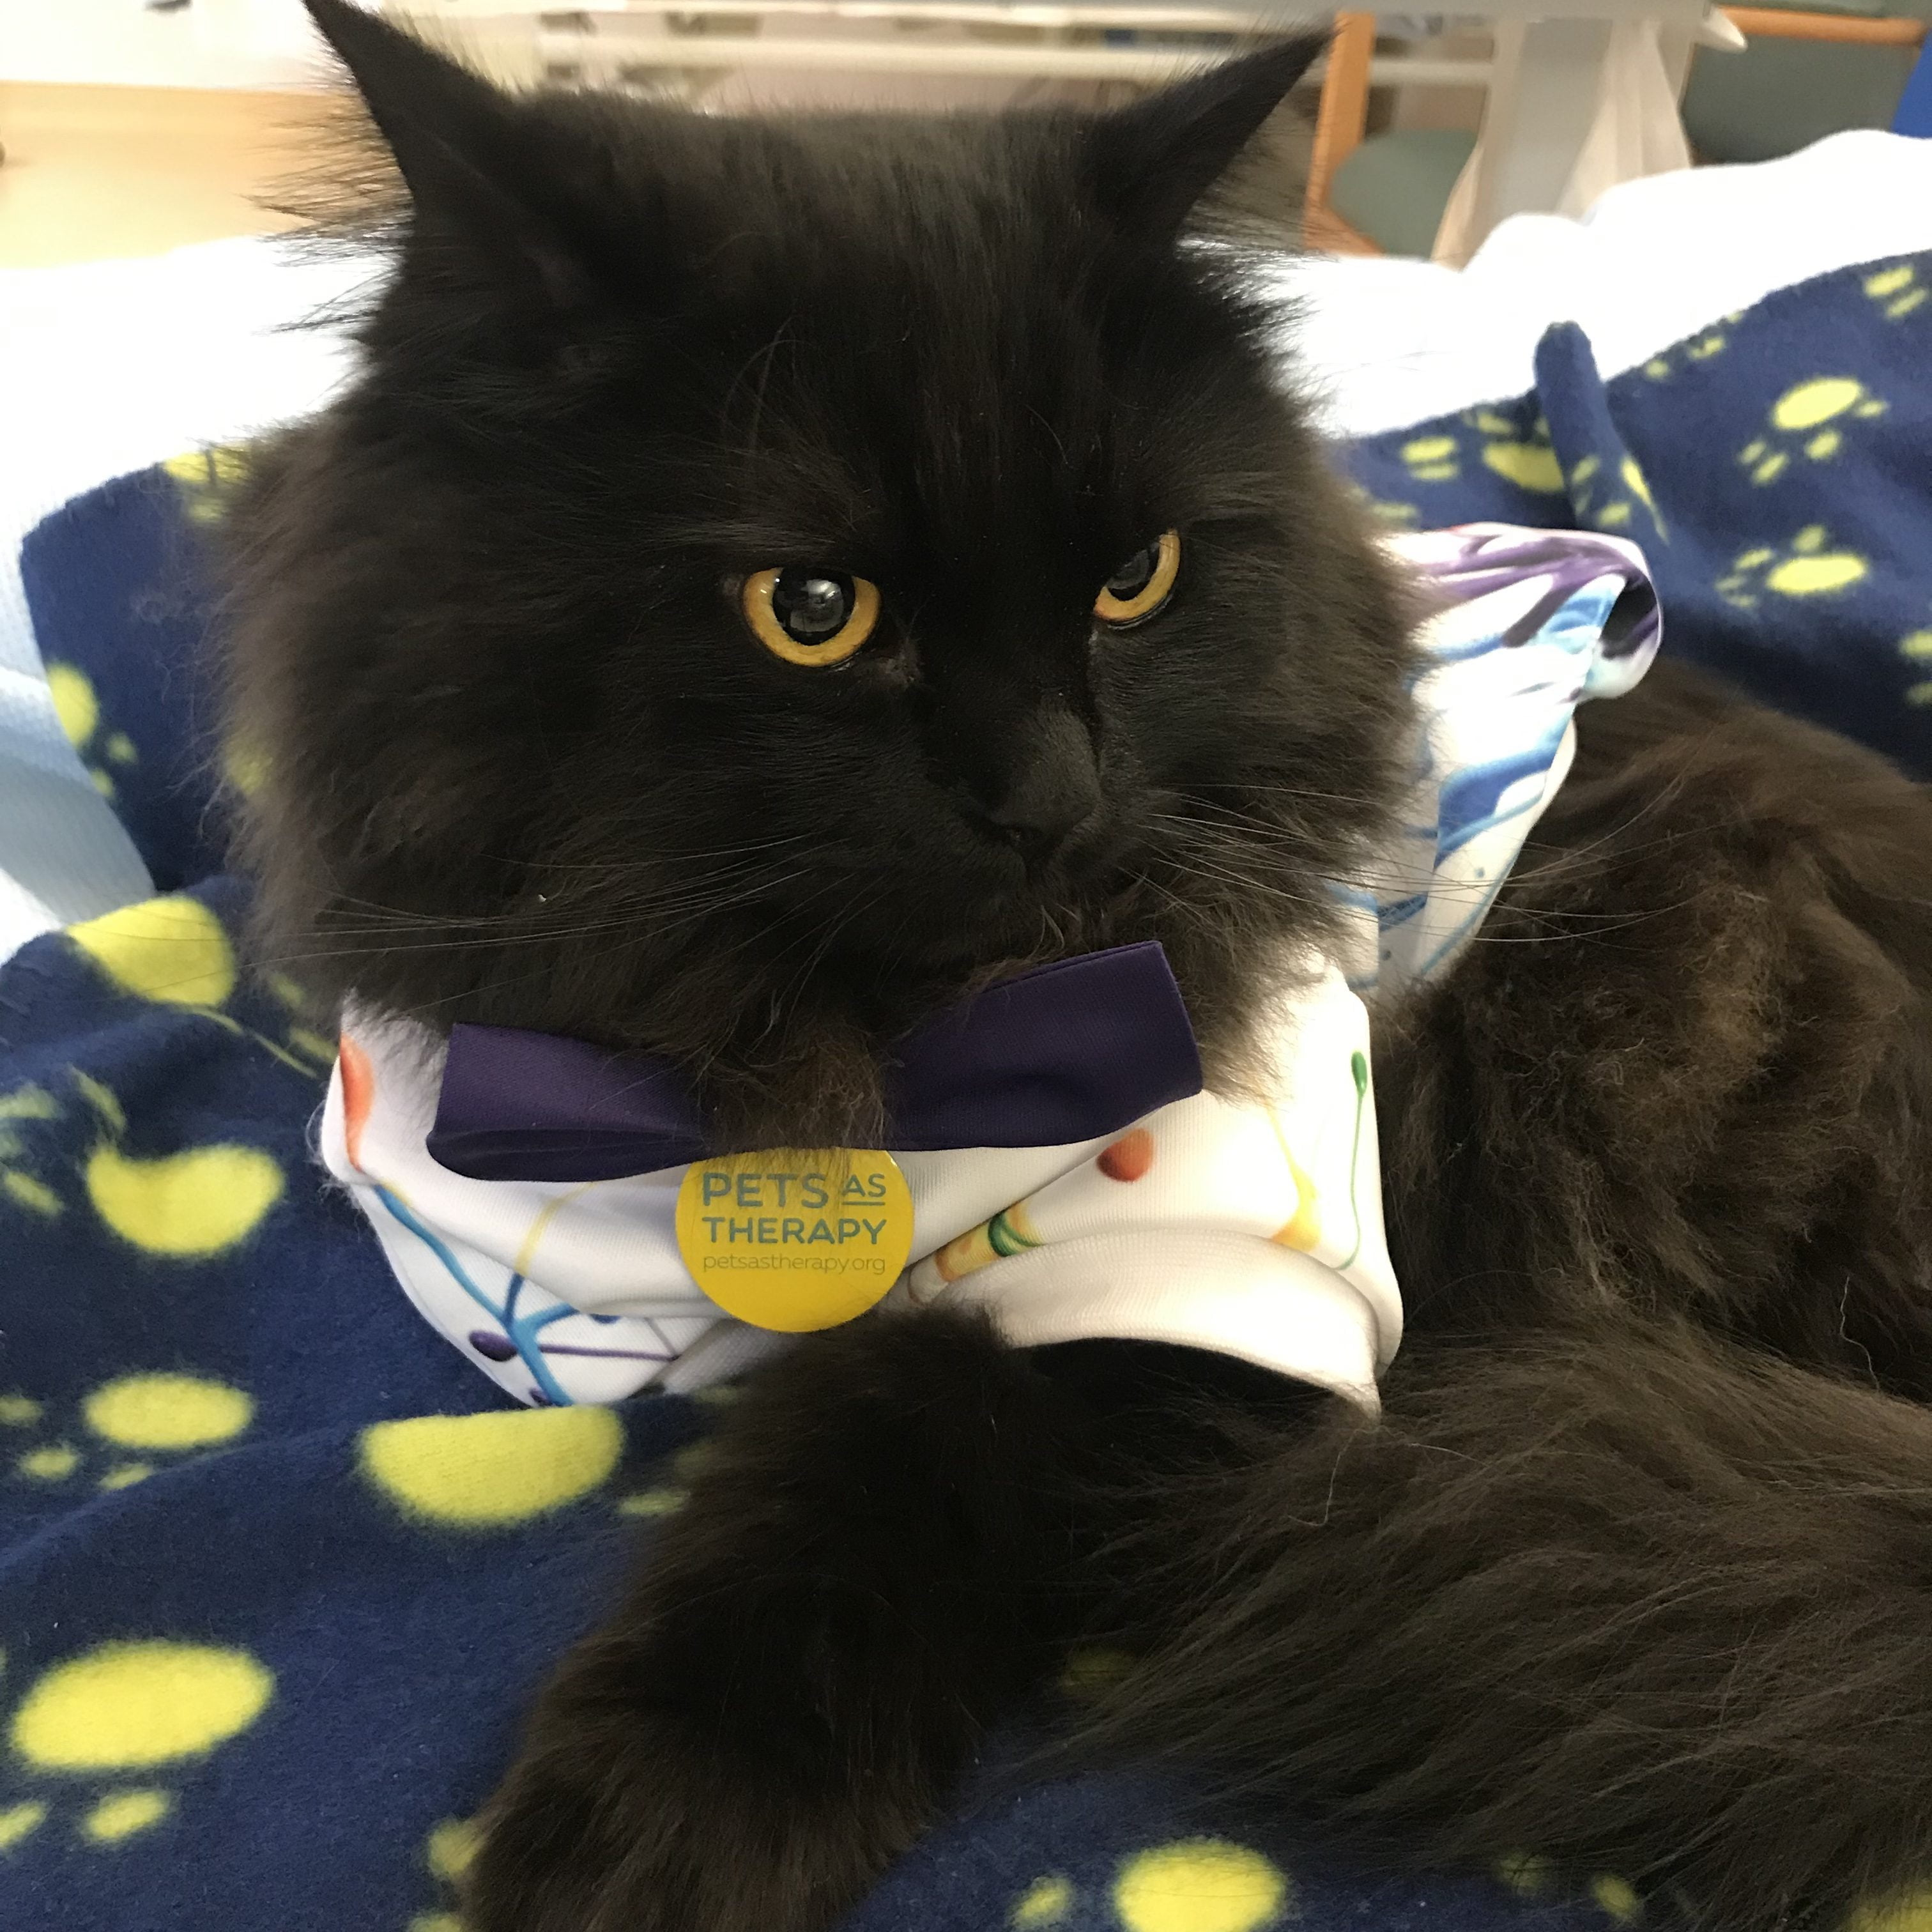 Pets as Therapy Cat London on his blanket